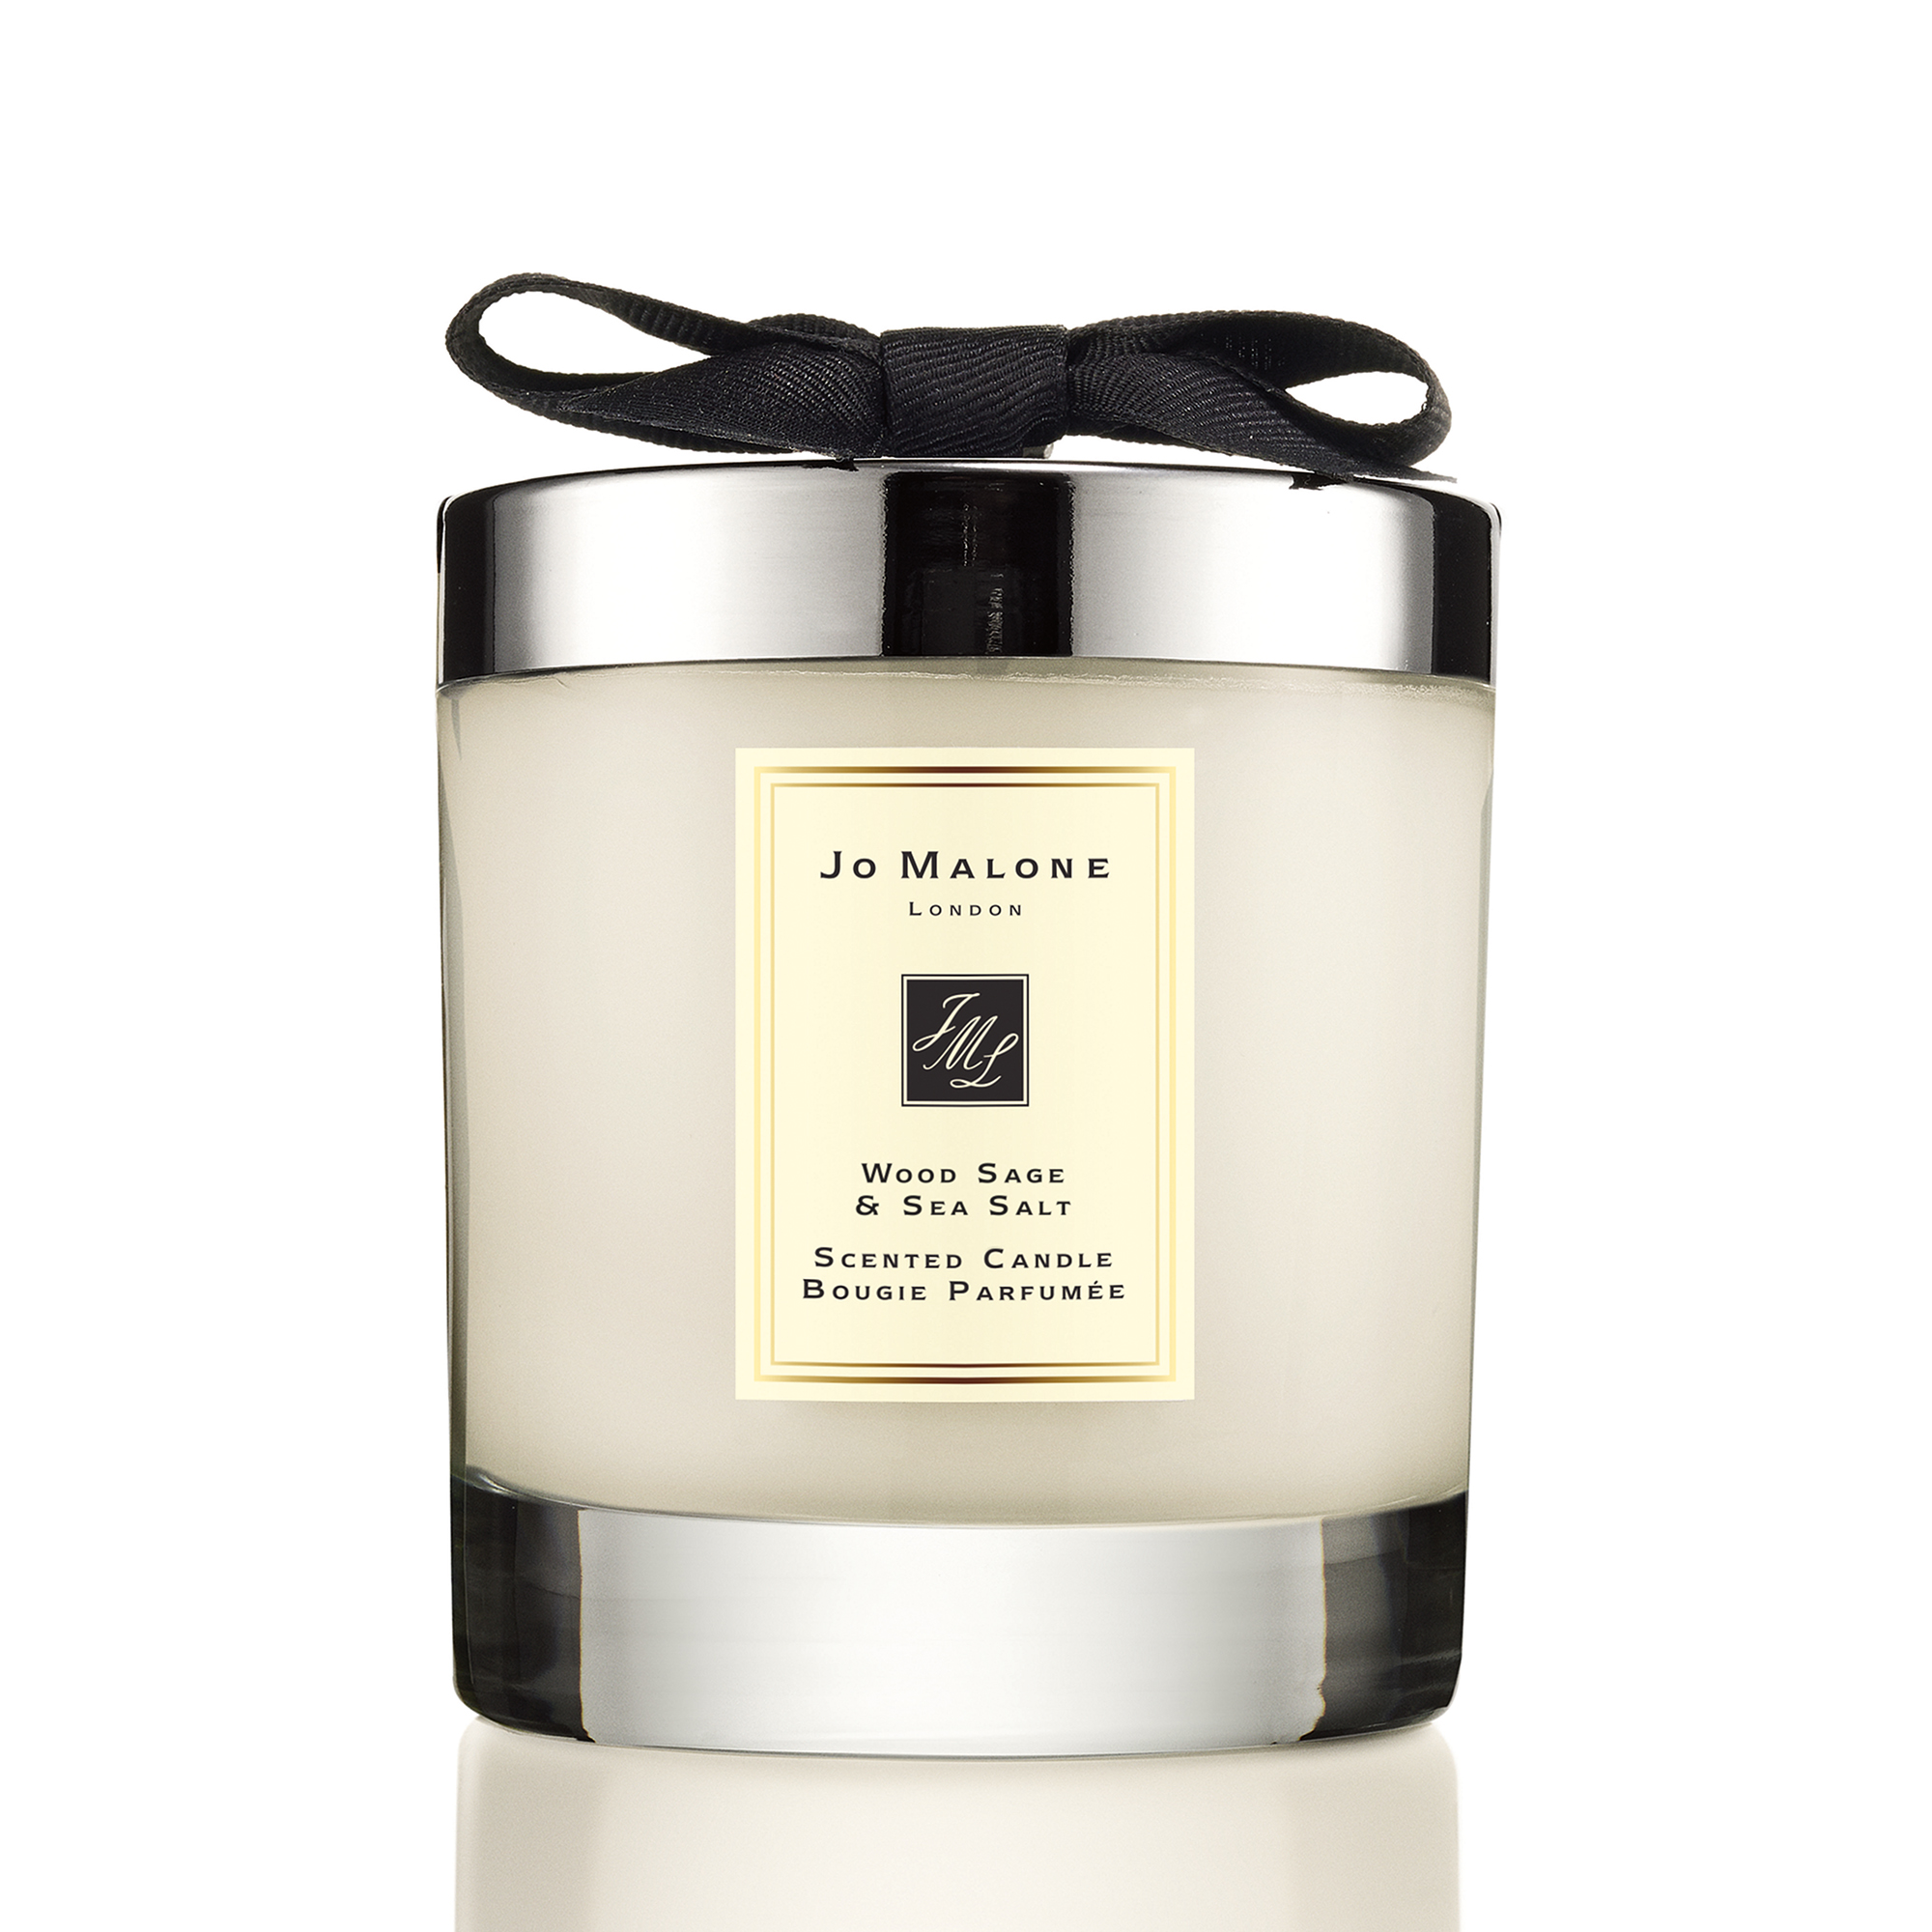 Wood Sage & Sea Salt Home Scented Candle